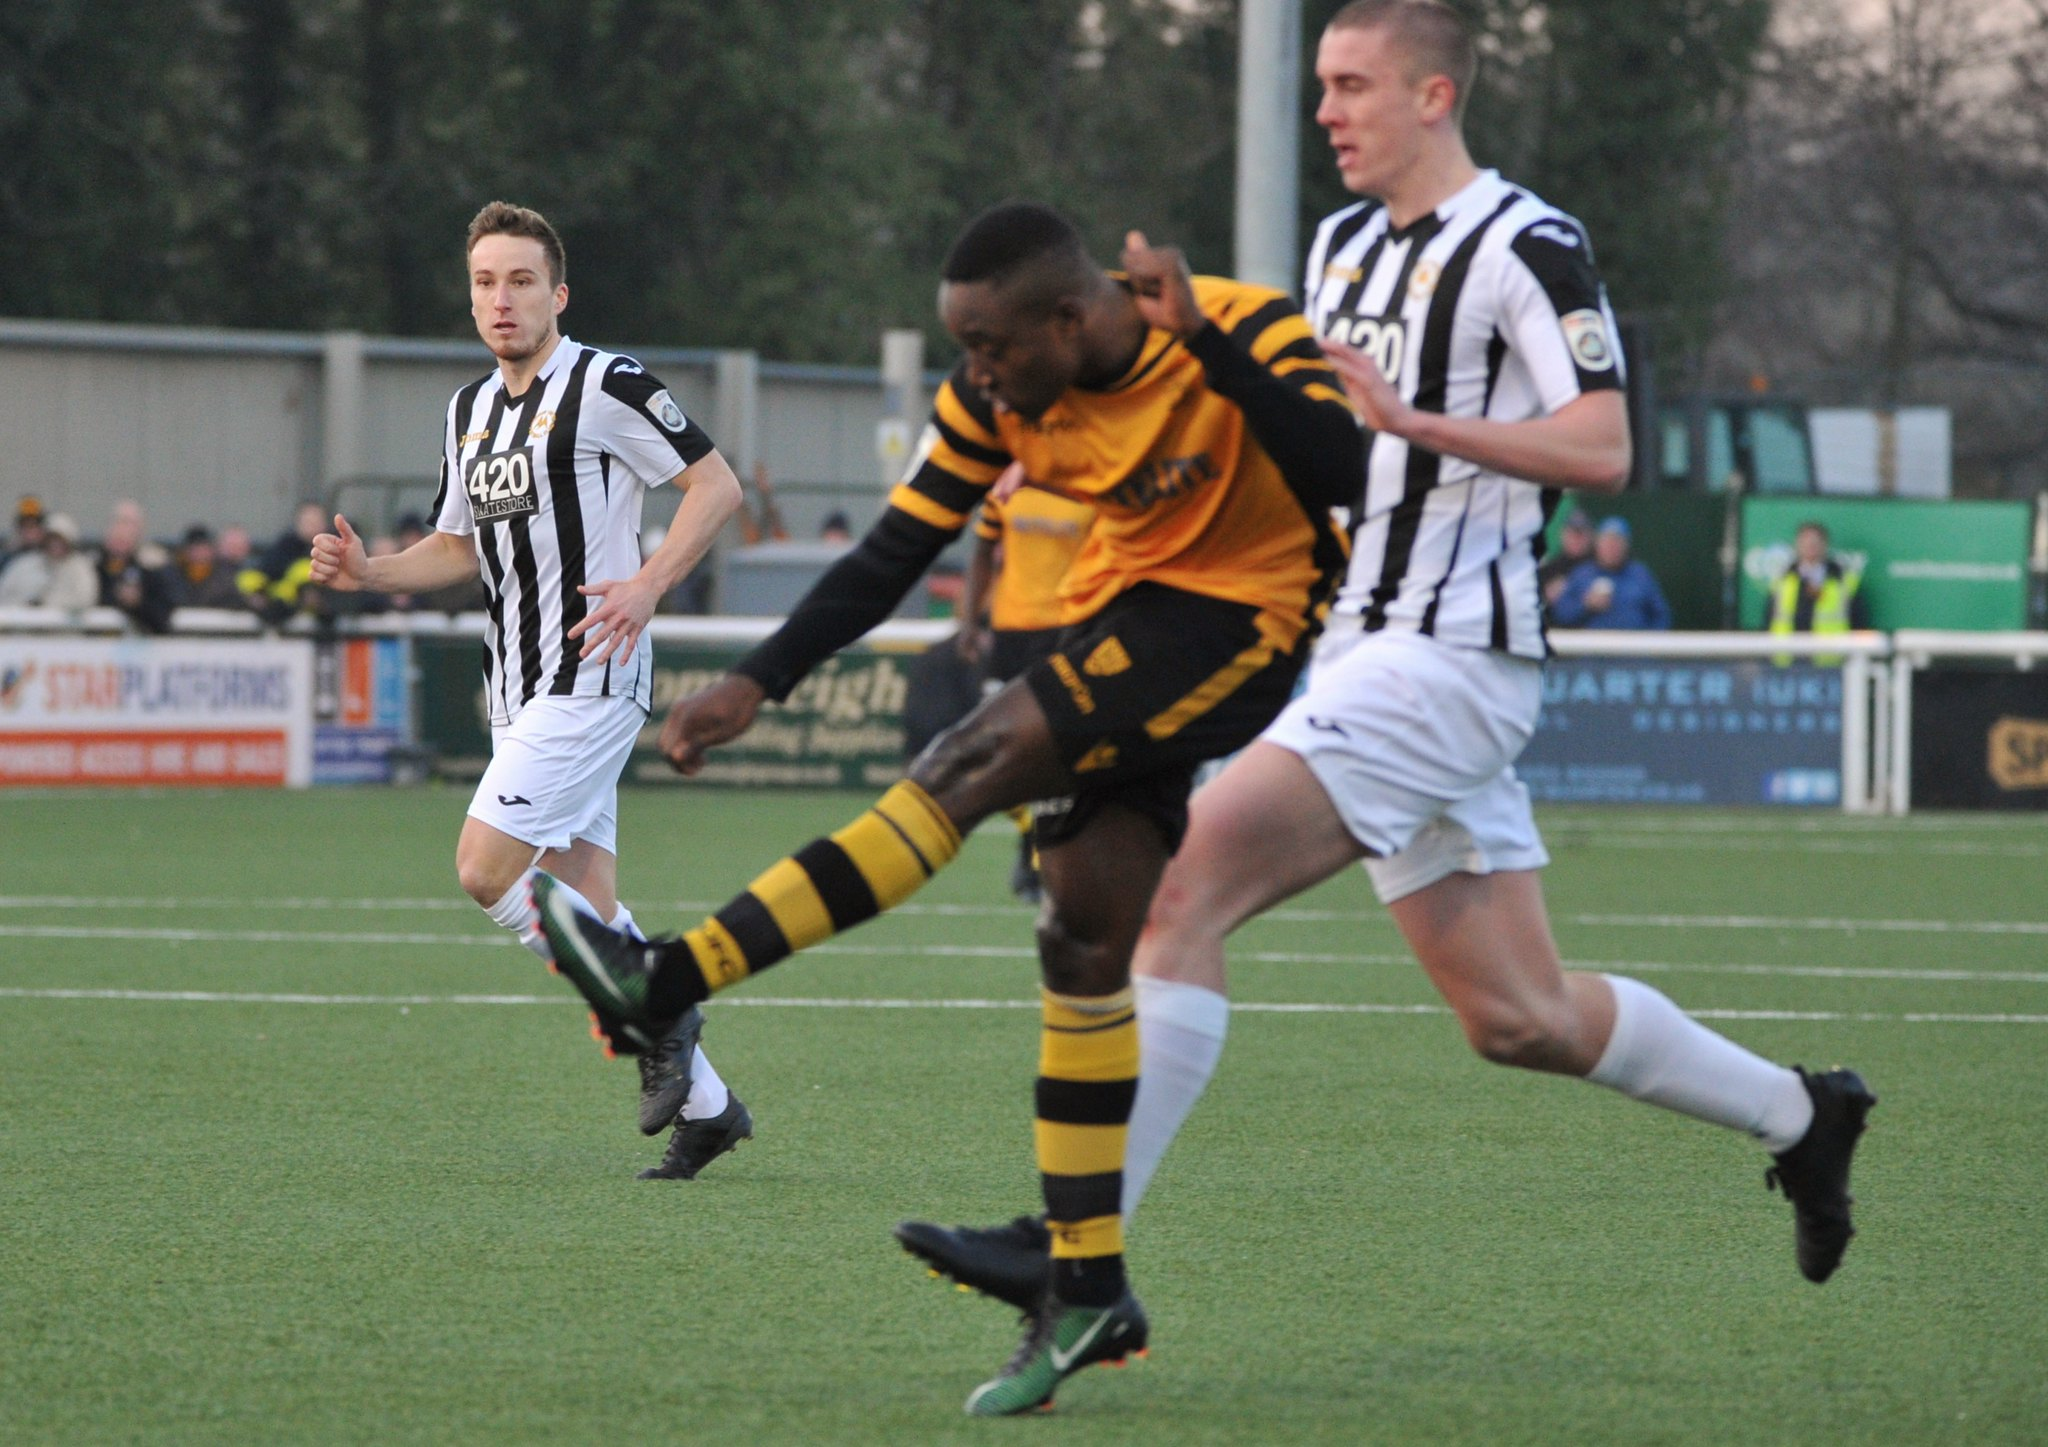 Maidstone United v Torquay United 285